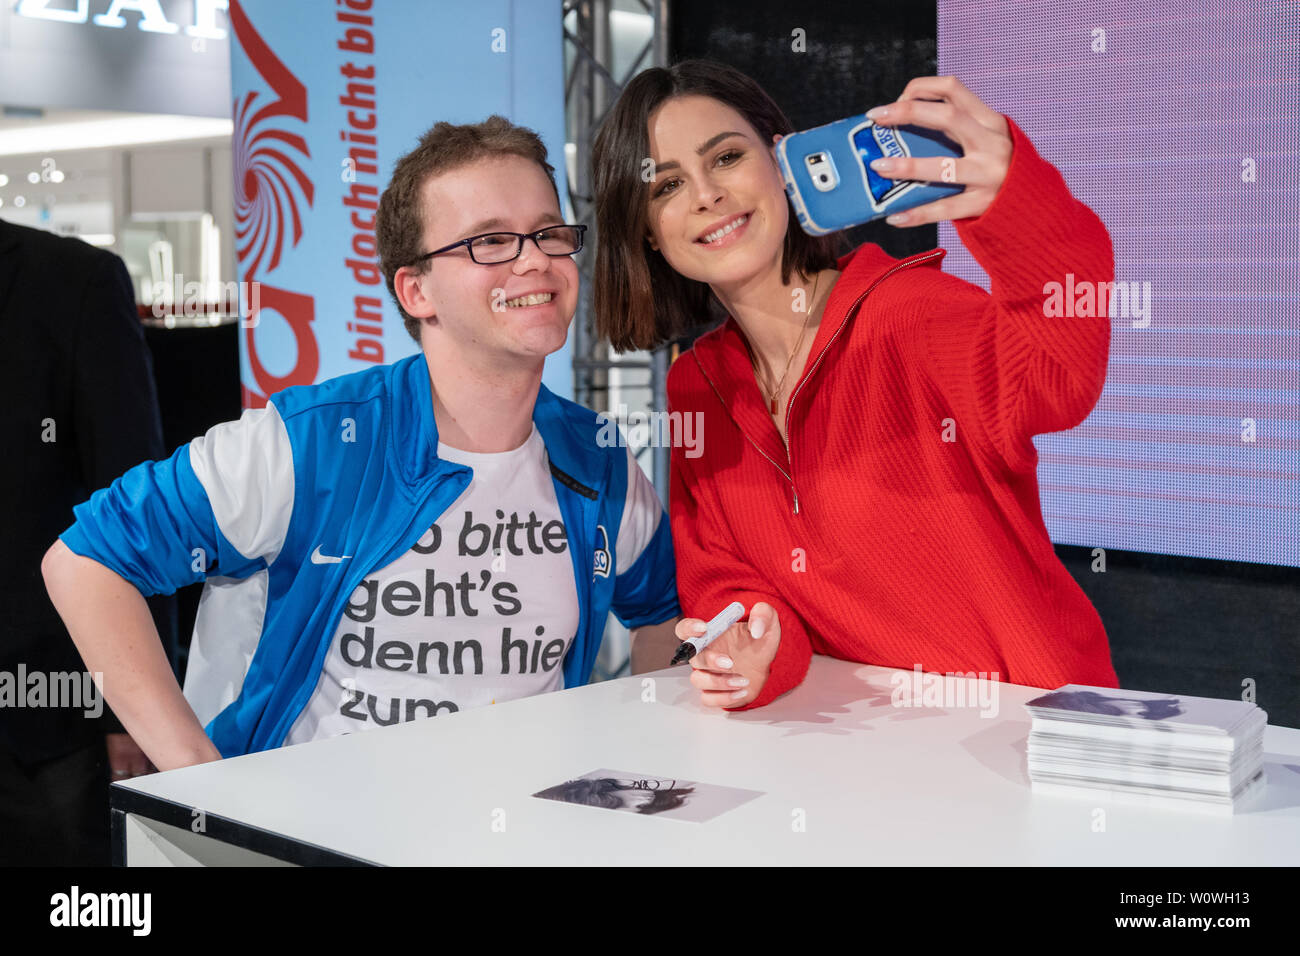 Lena Meyer Landrut L High Resolution Stock Photography And Images Alamy